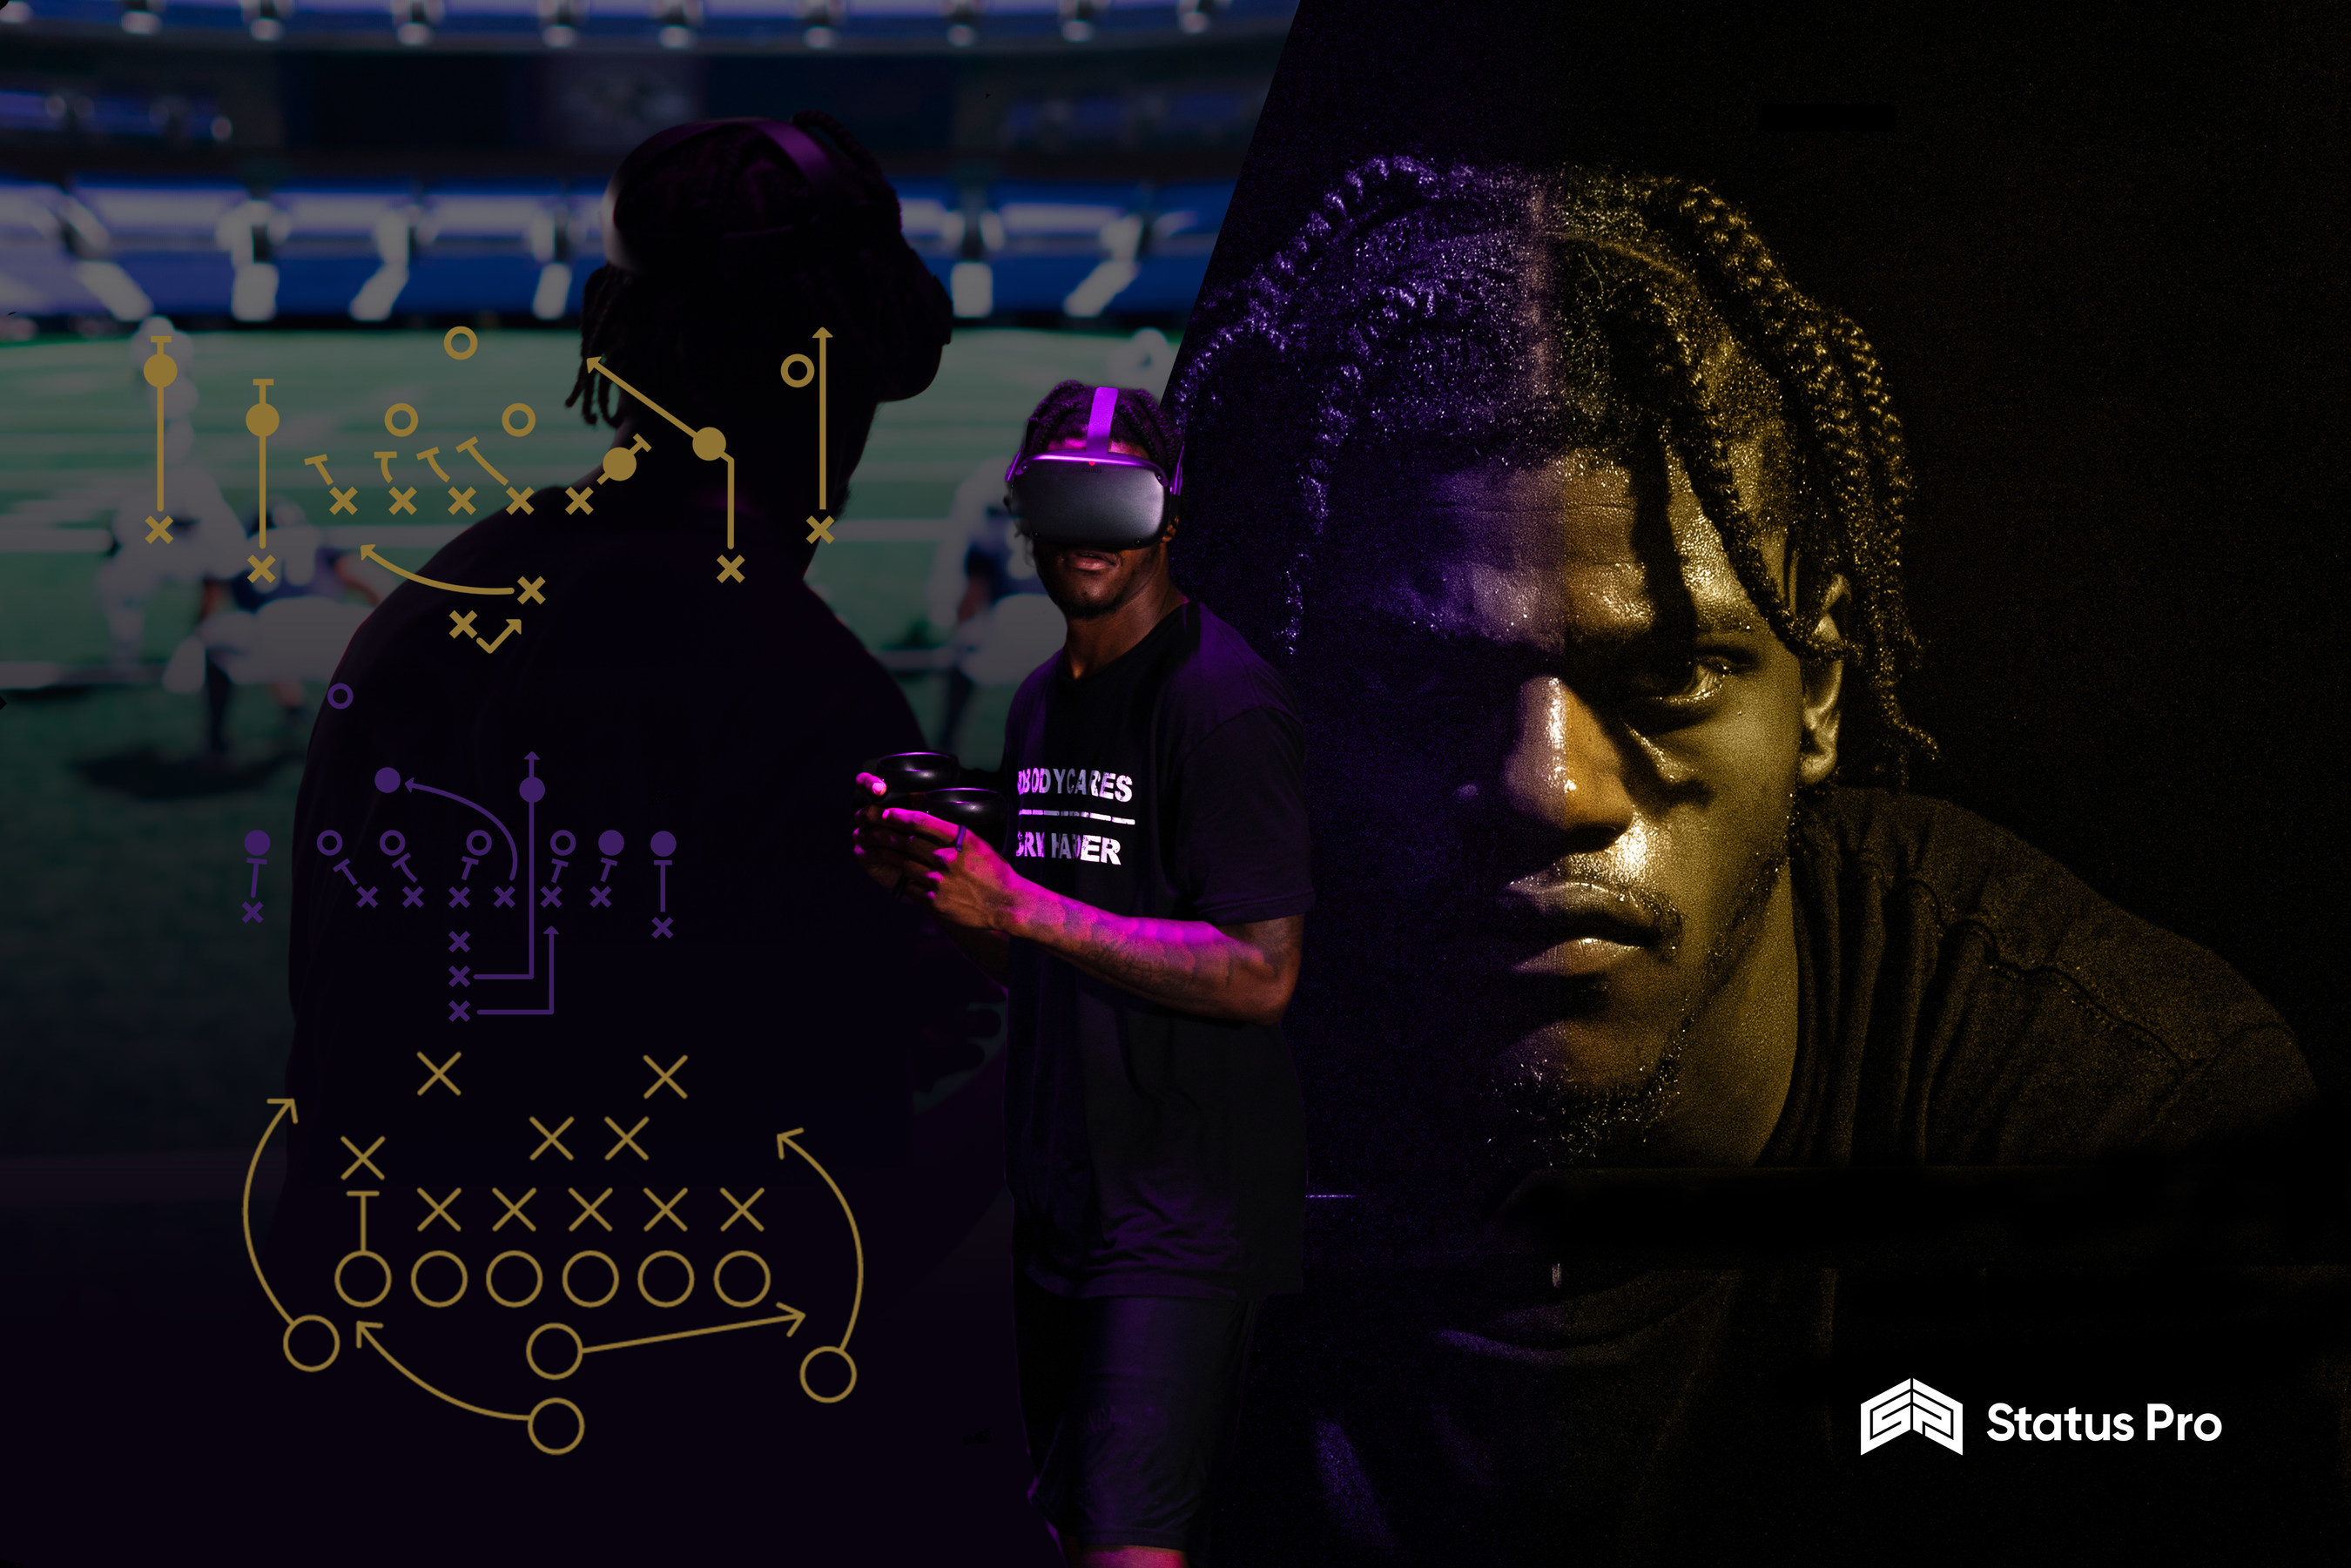 Status Pro Partners With Nfl Mvp Lamar Jackson To Produce The Lamar Jackson Experience Through A Suite Of Vr Products Which Includes An At Home Virtual Reality Game